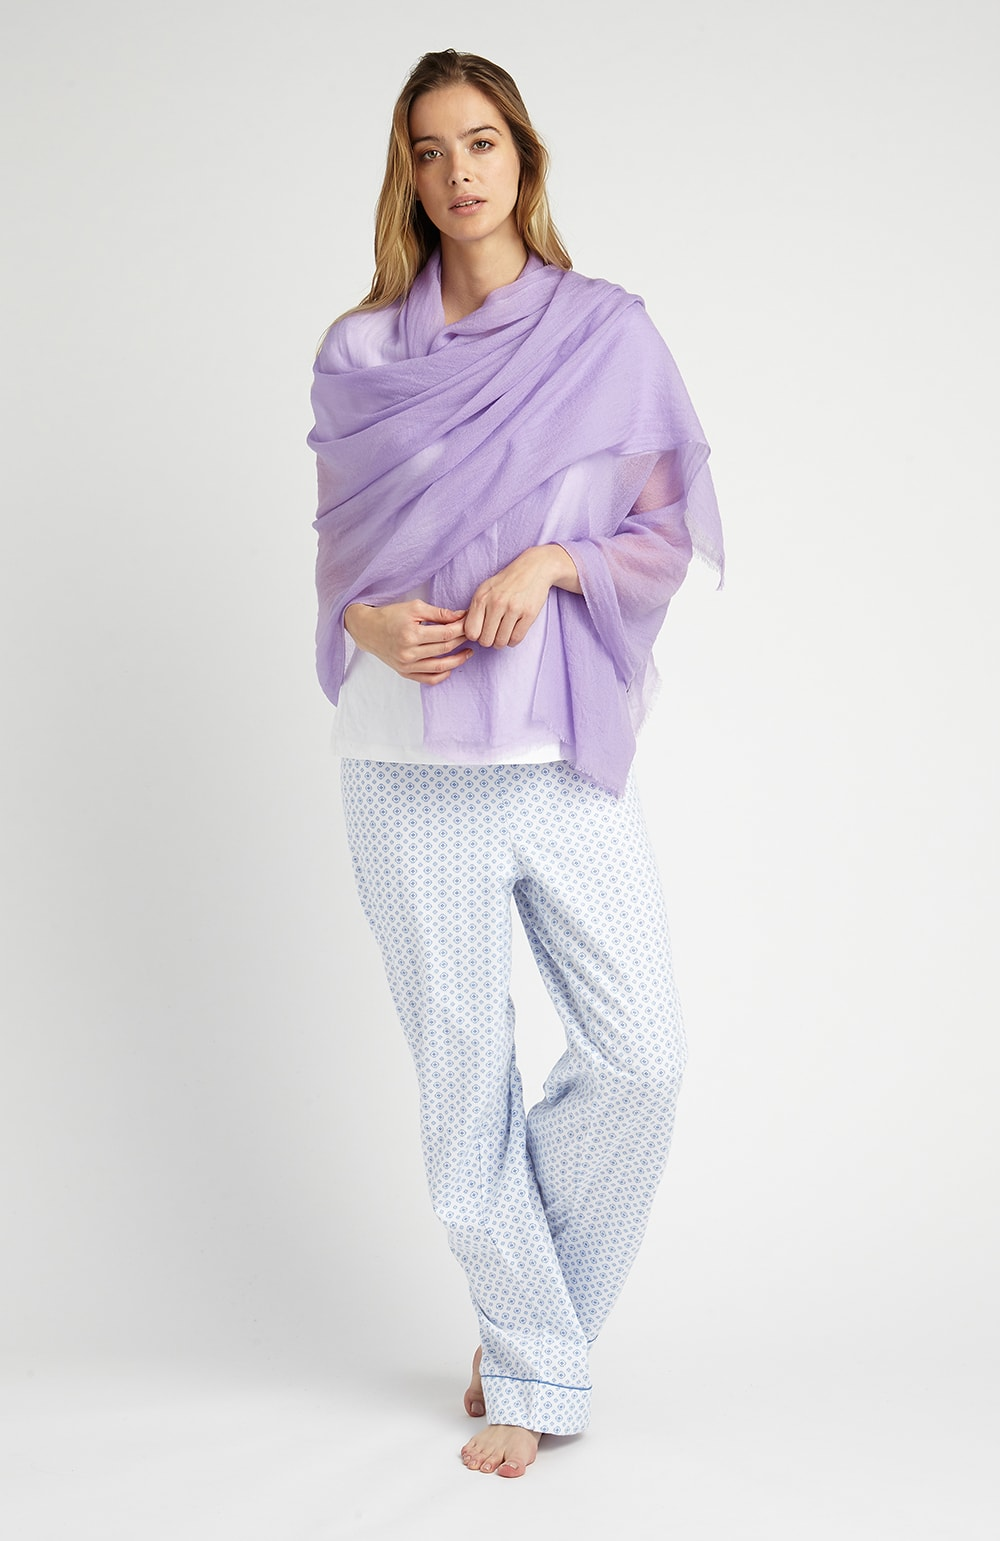 Cashmere Shawl (cswl) - Lilac | Bonsoir of London